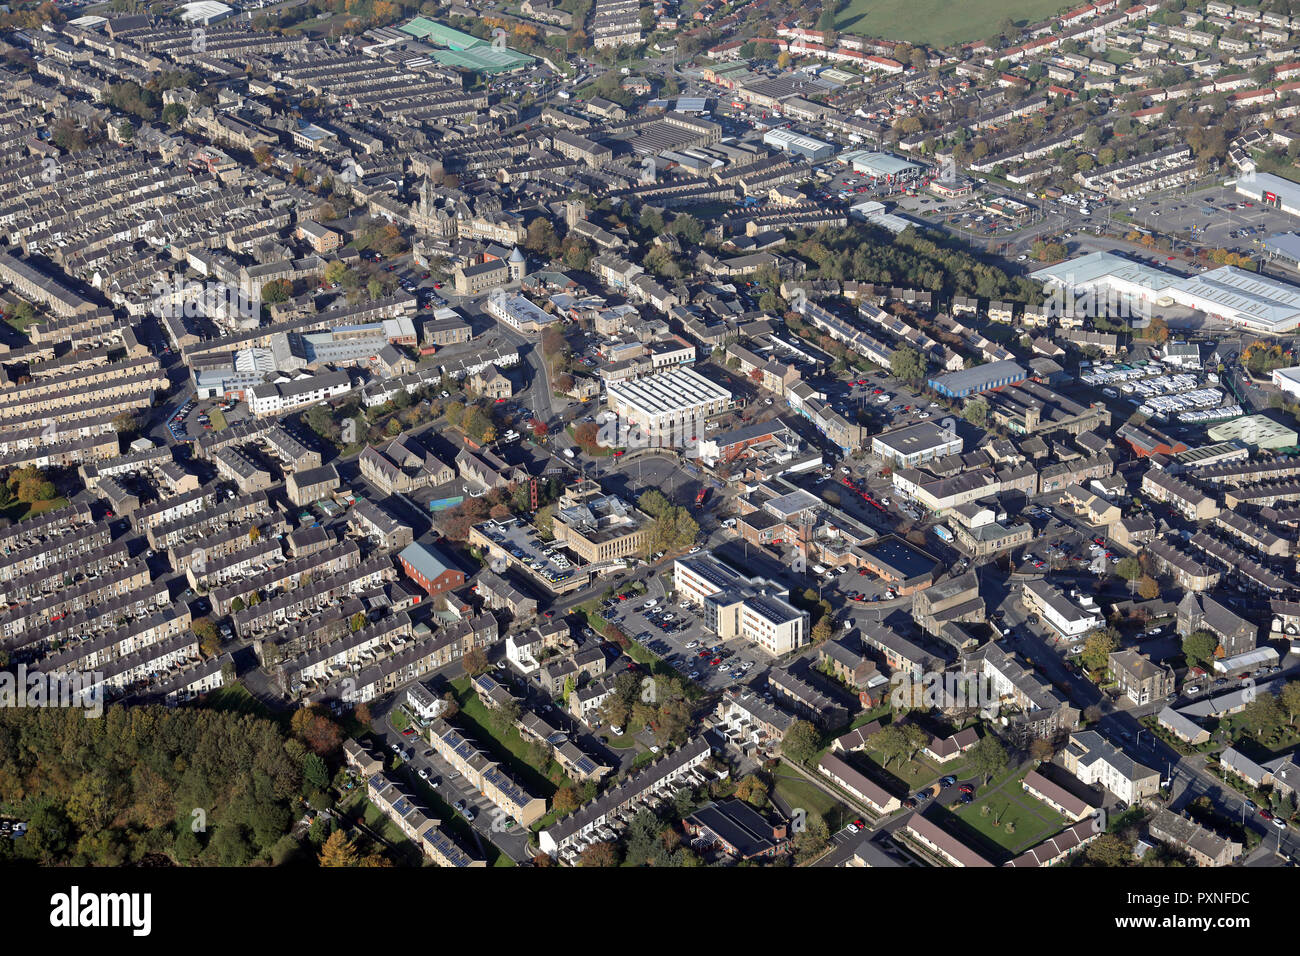 aerial view of Colne town centre, Lancashire, UK - Stock Image